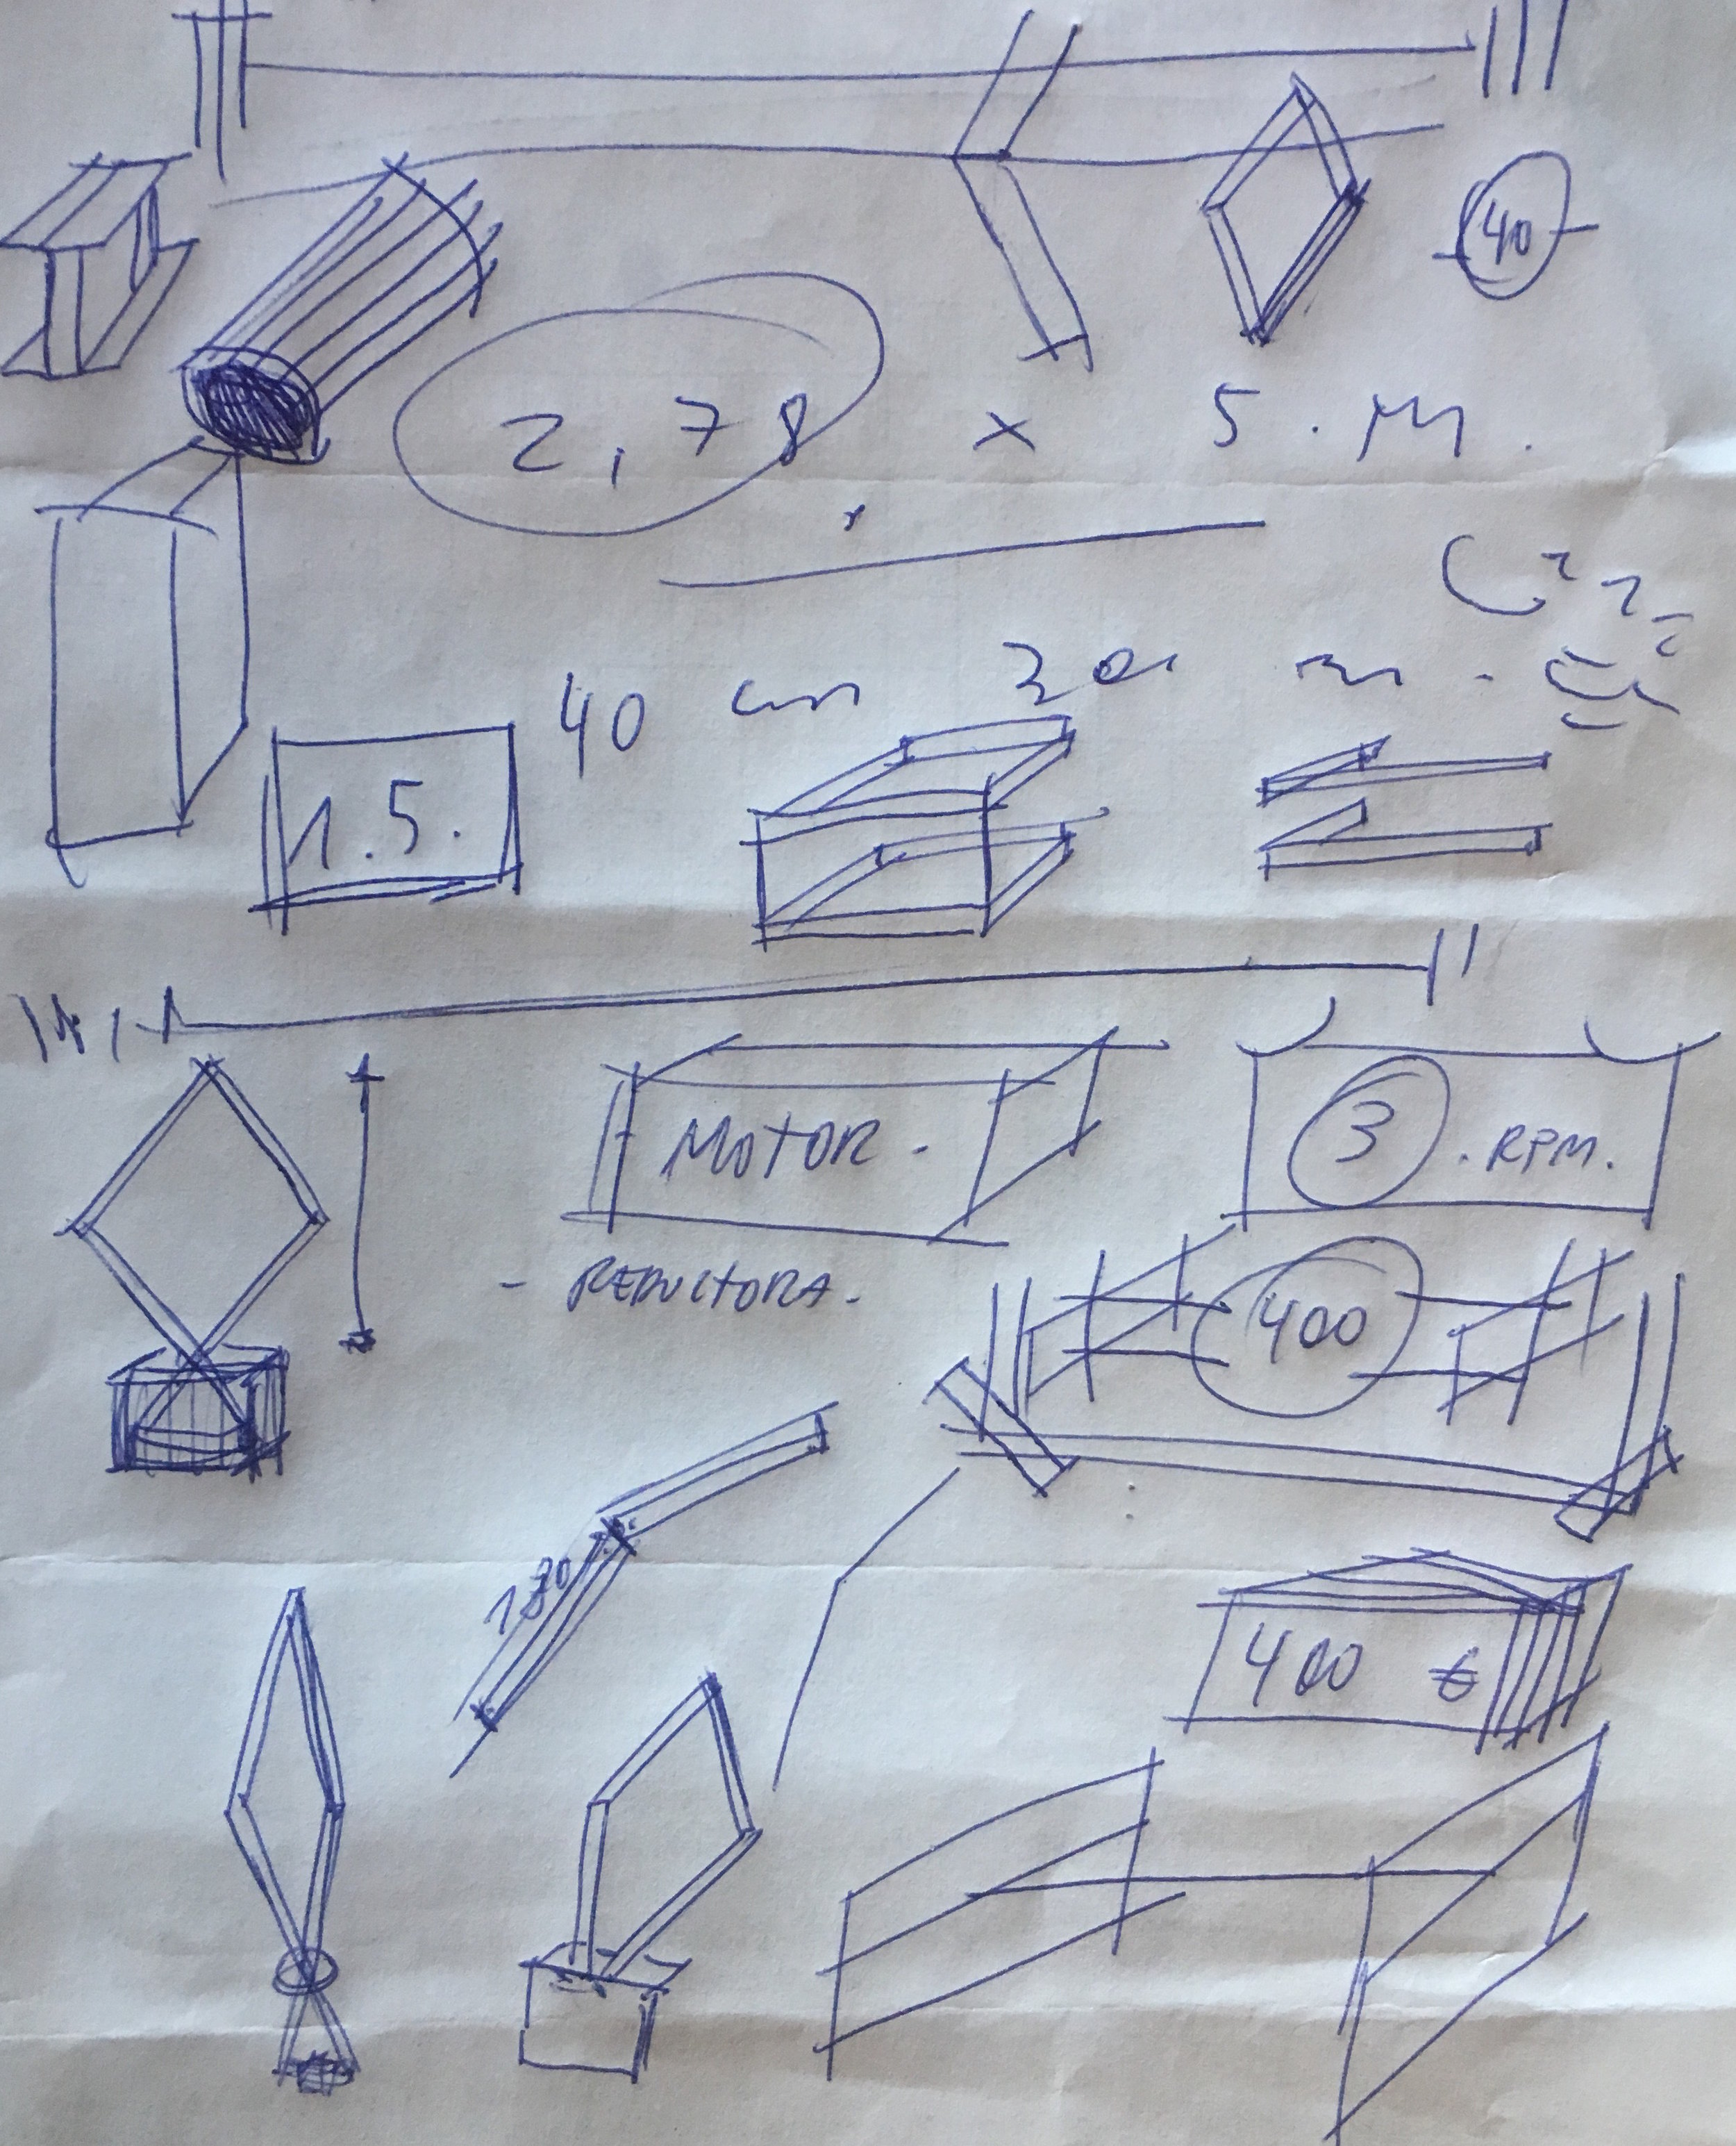 Lolo & Sosaku's first sketches for  Omul mulțime/Hombre masa